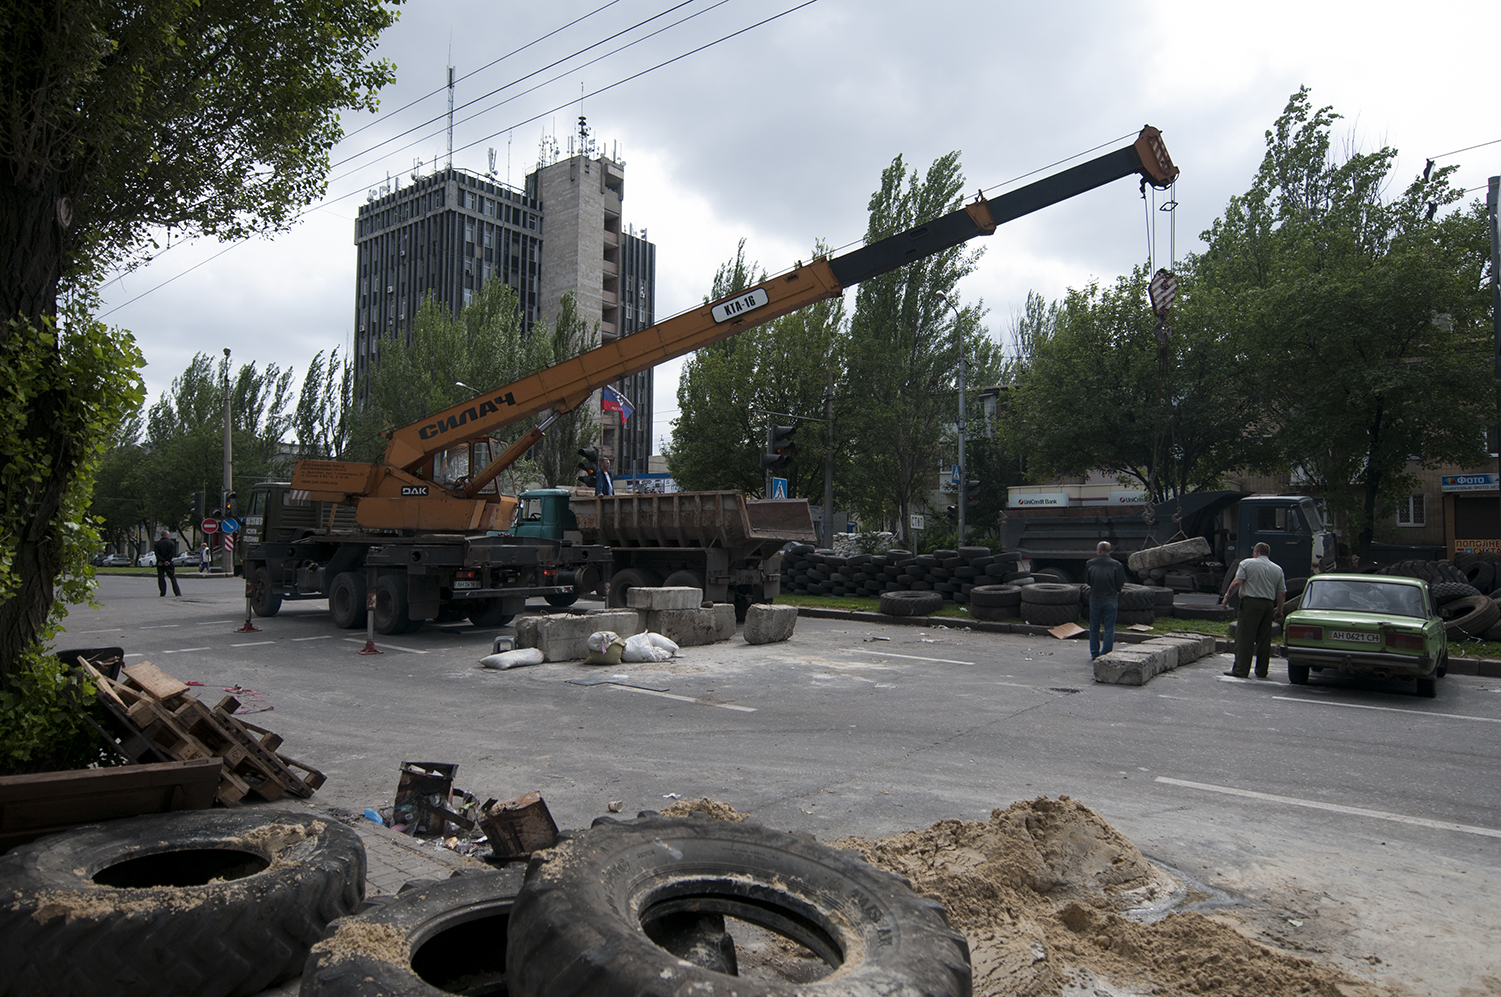 Men removing the blockpost located on the road leading to the  Donetsk Sergey Prokofiev International Airport under the order of Vostok Battalion. The people in charge of this battalion decided to rebuild the blockpost away from the population and closer to the airport, to minimize the risque of civilian casualties in case of an attack.